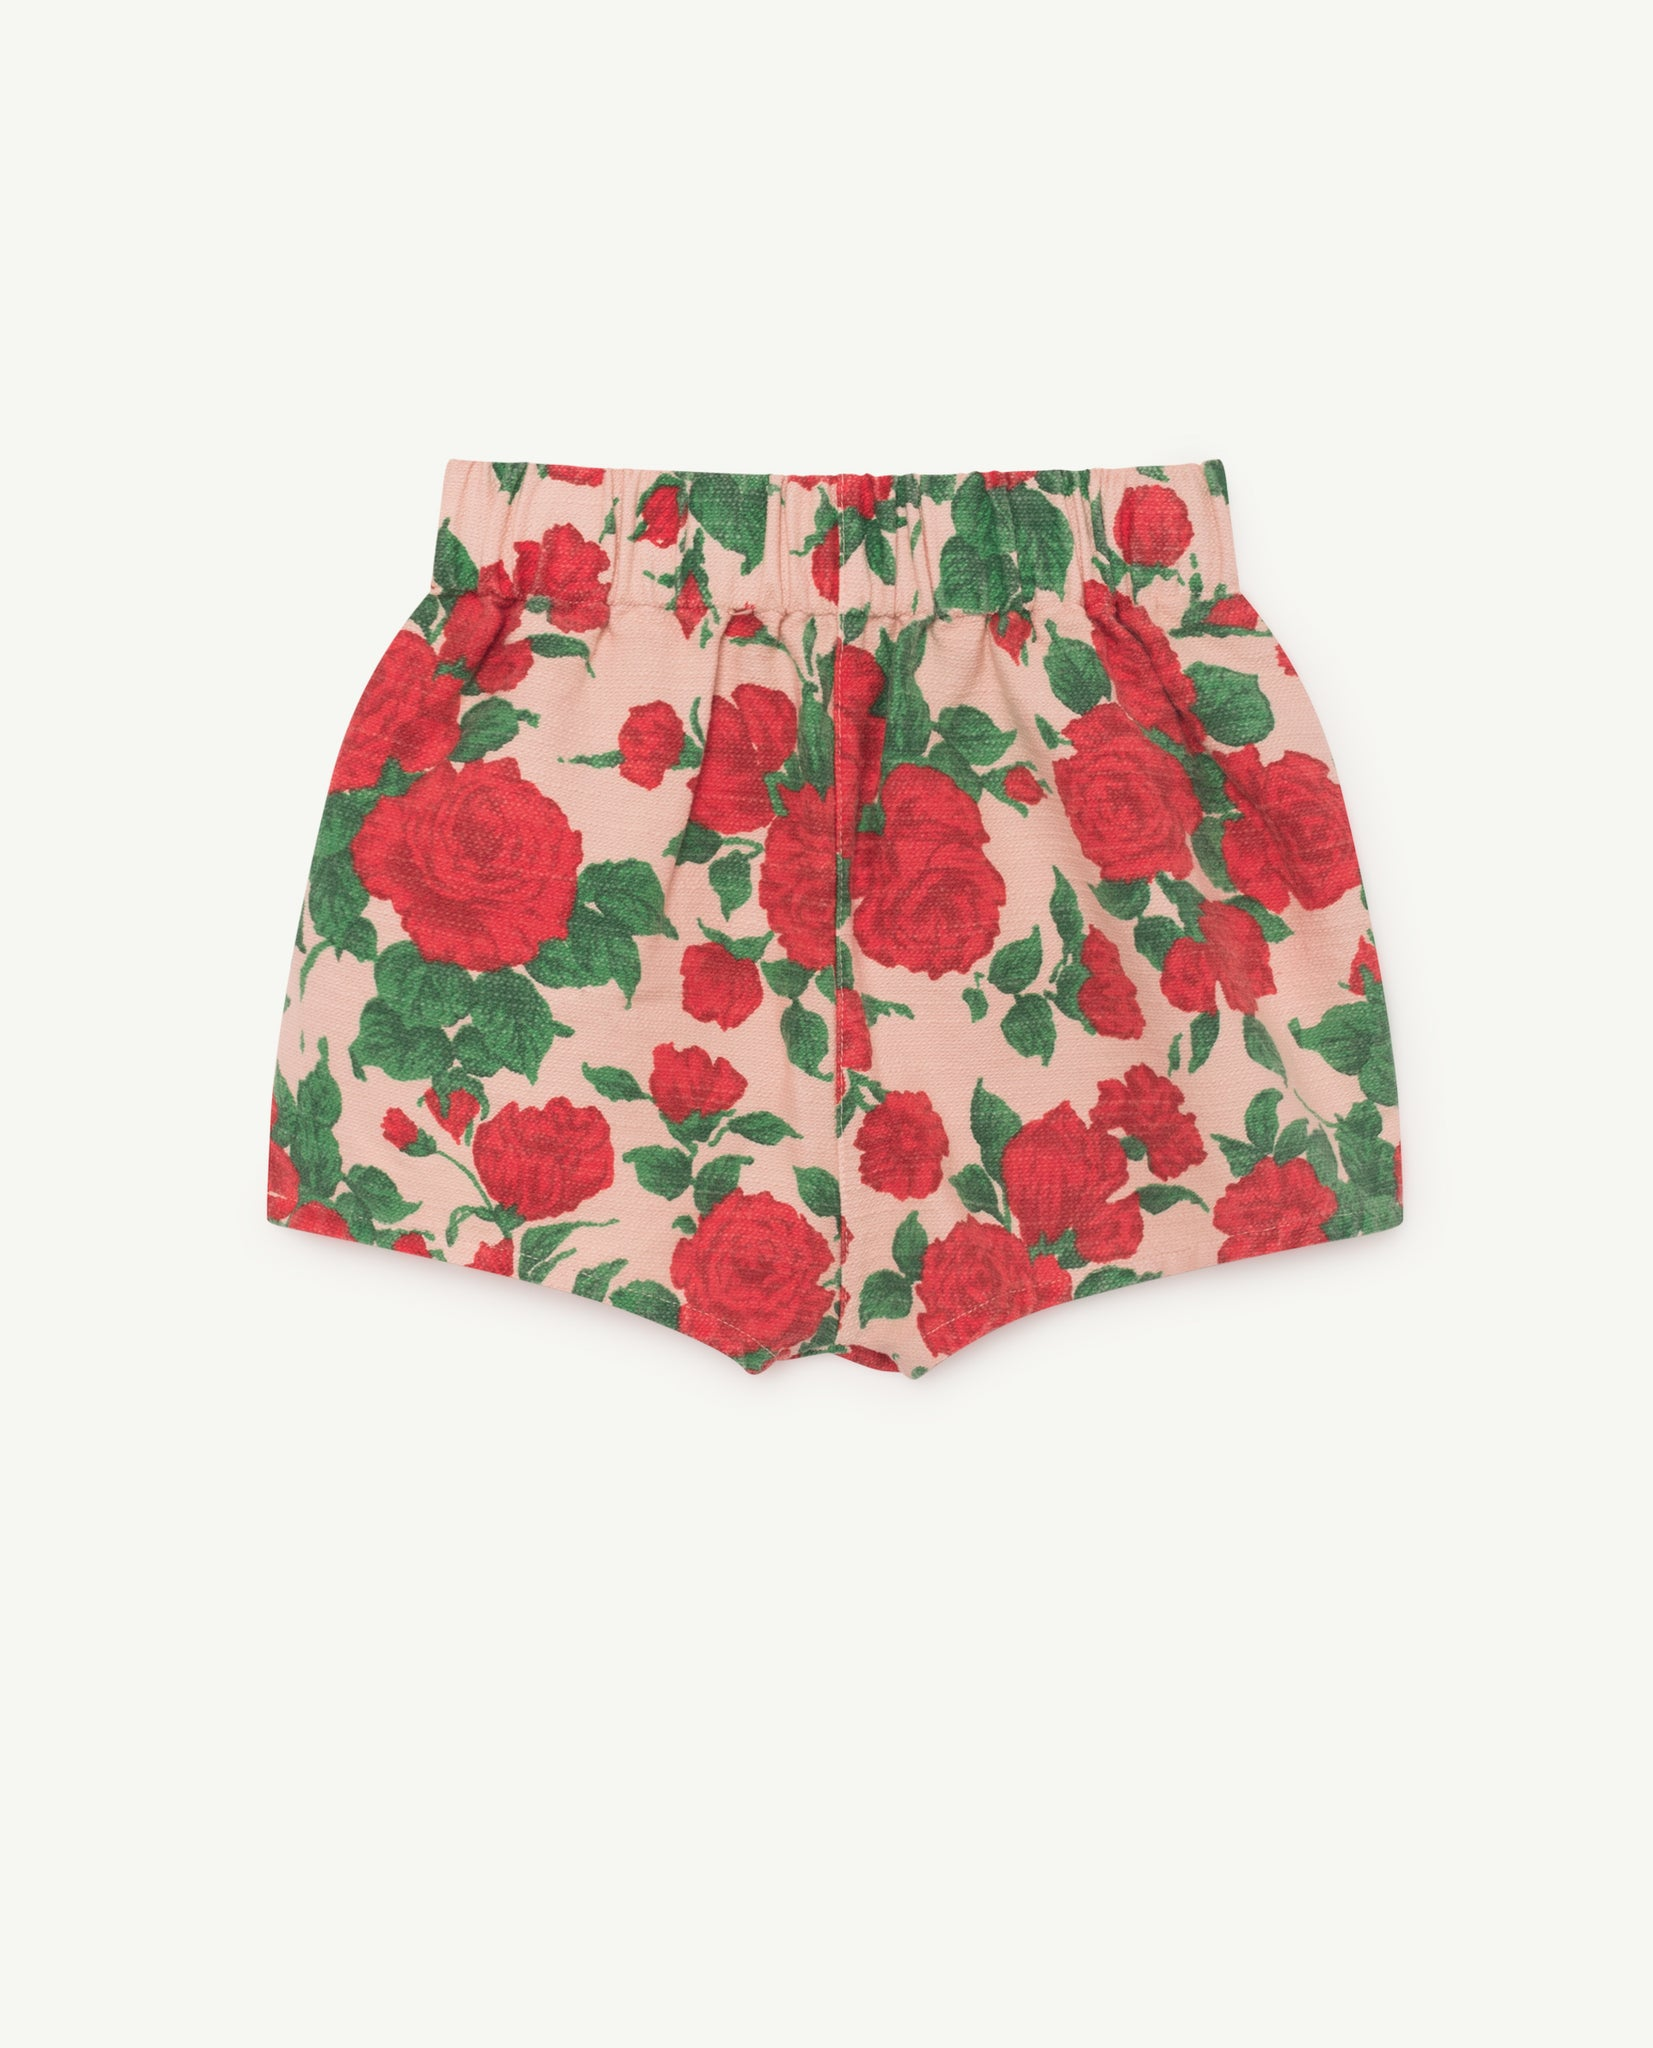 CLAM KIDS SHORTS // NUDE ROSES